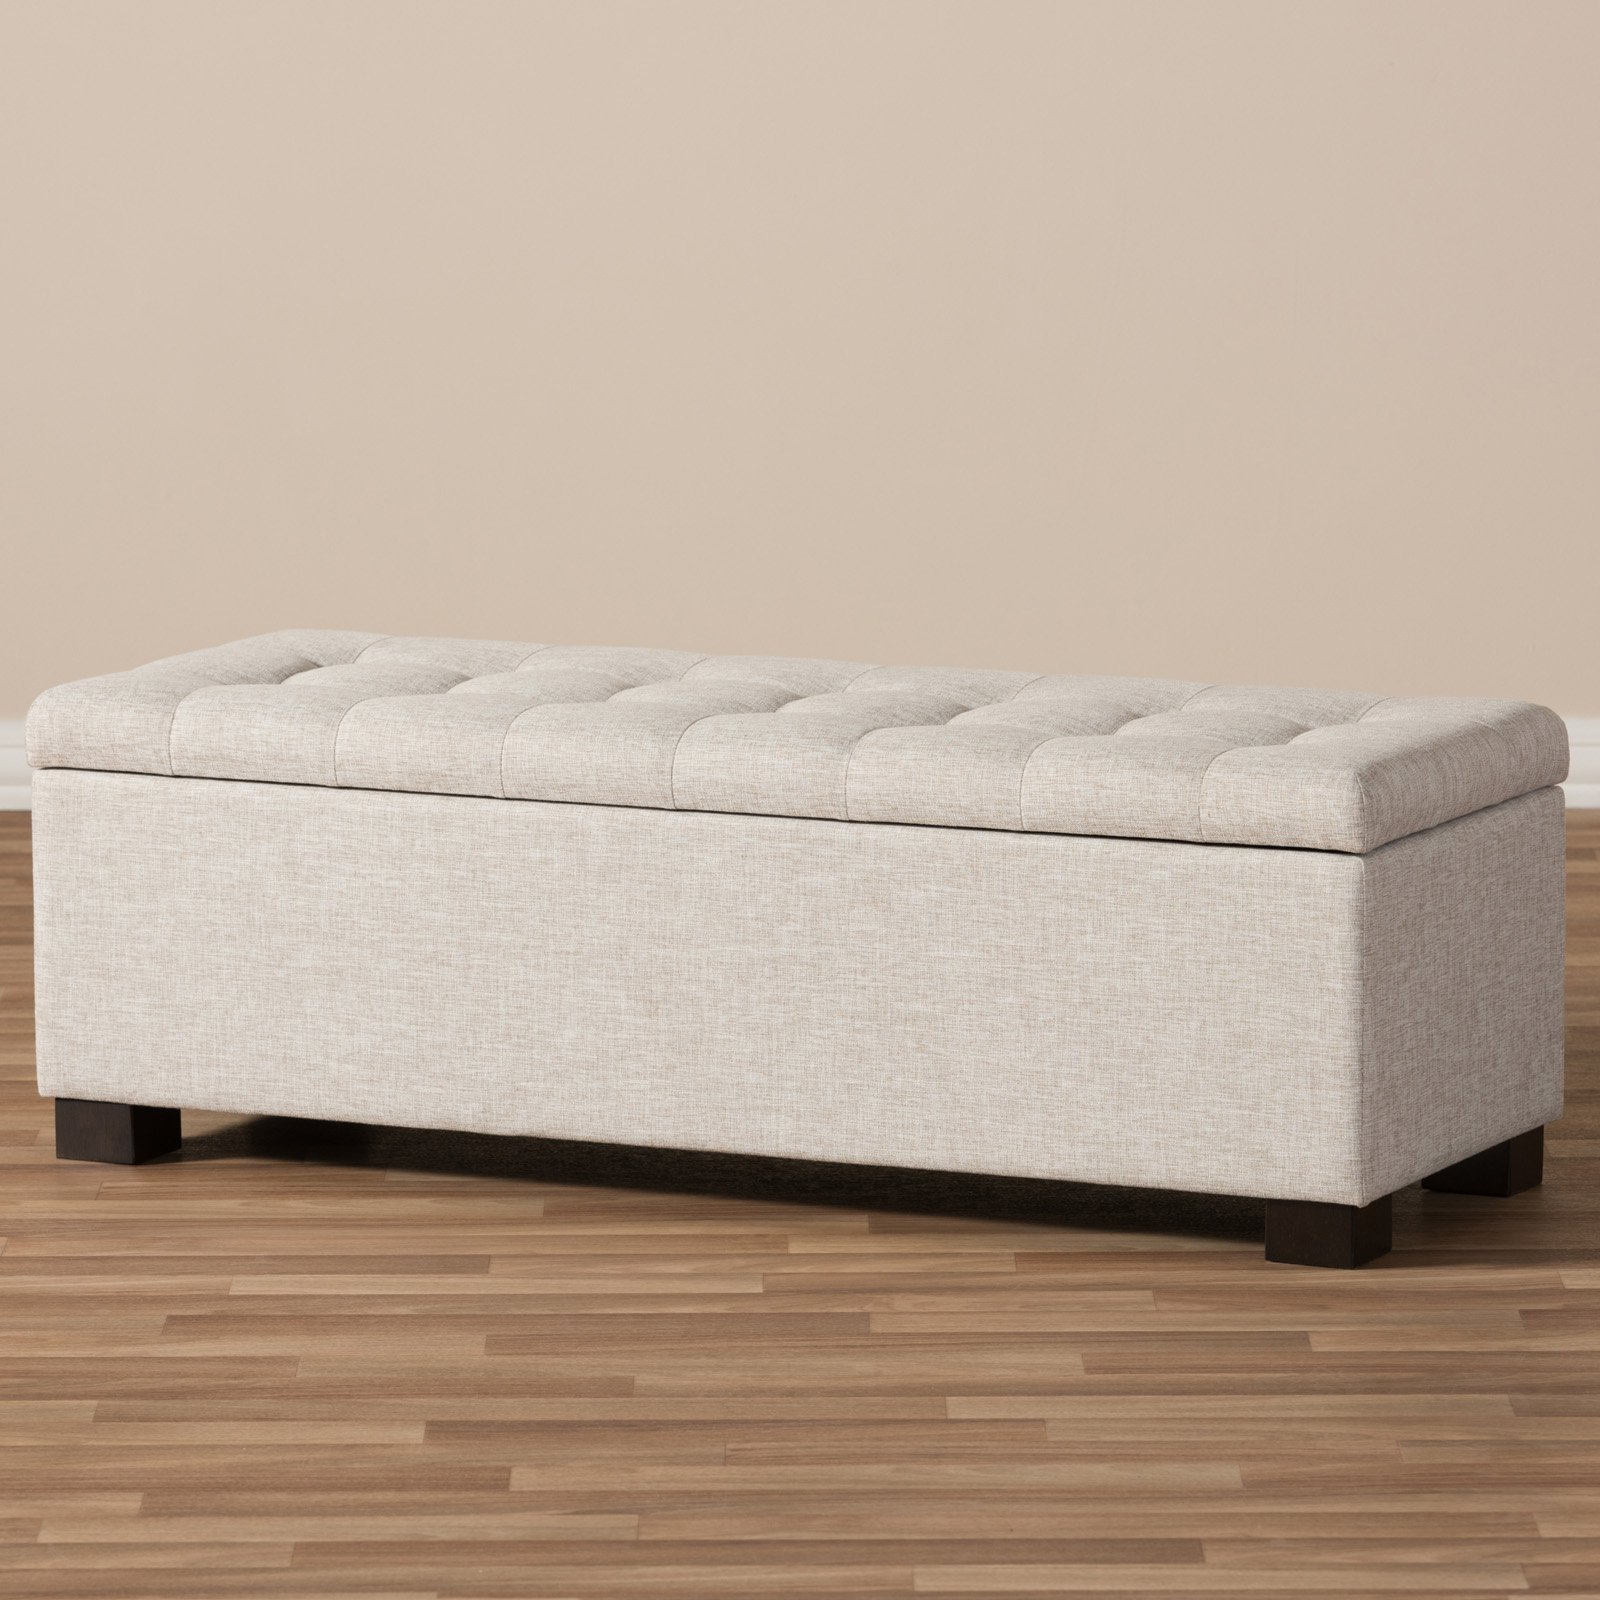 Merveilleux Baxton Studio Roanoke Modern And Contemporary Dark Grey Fabric Upholstered  Grid Tufting Storage Ottoman Bench   Walmart.com